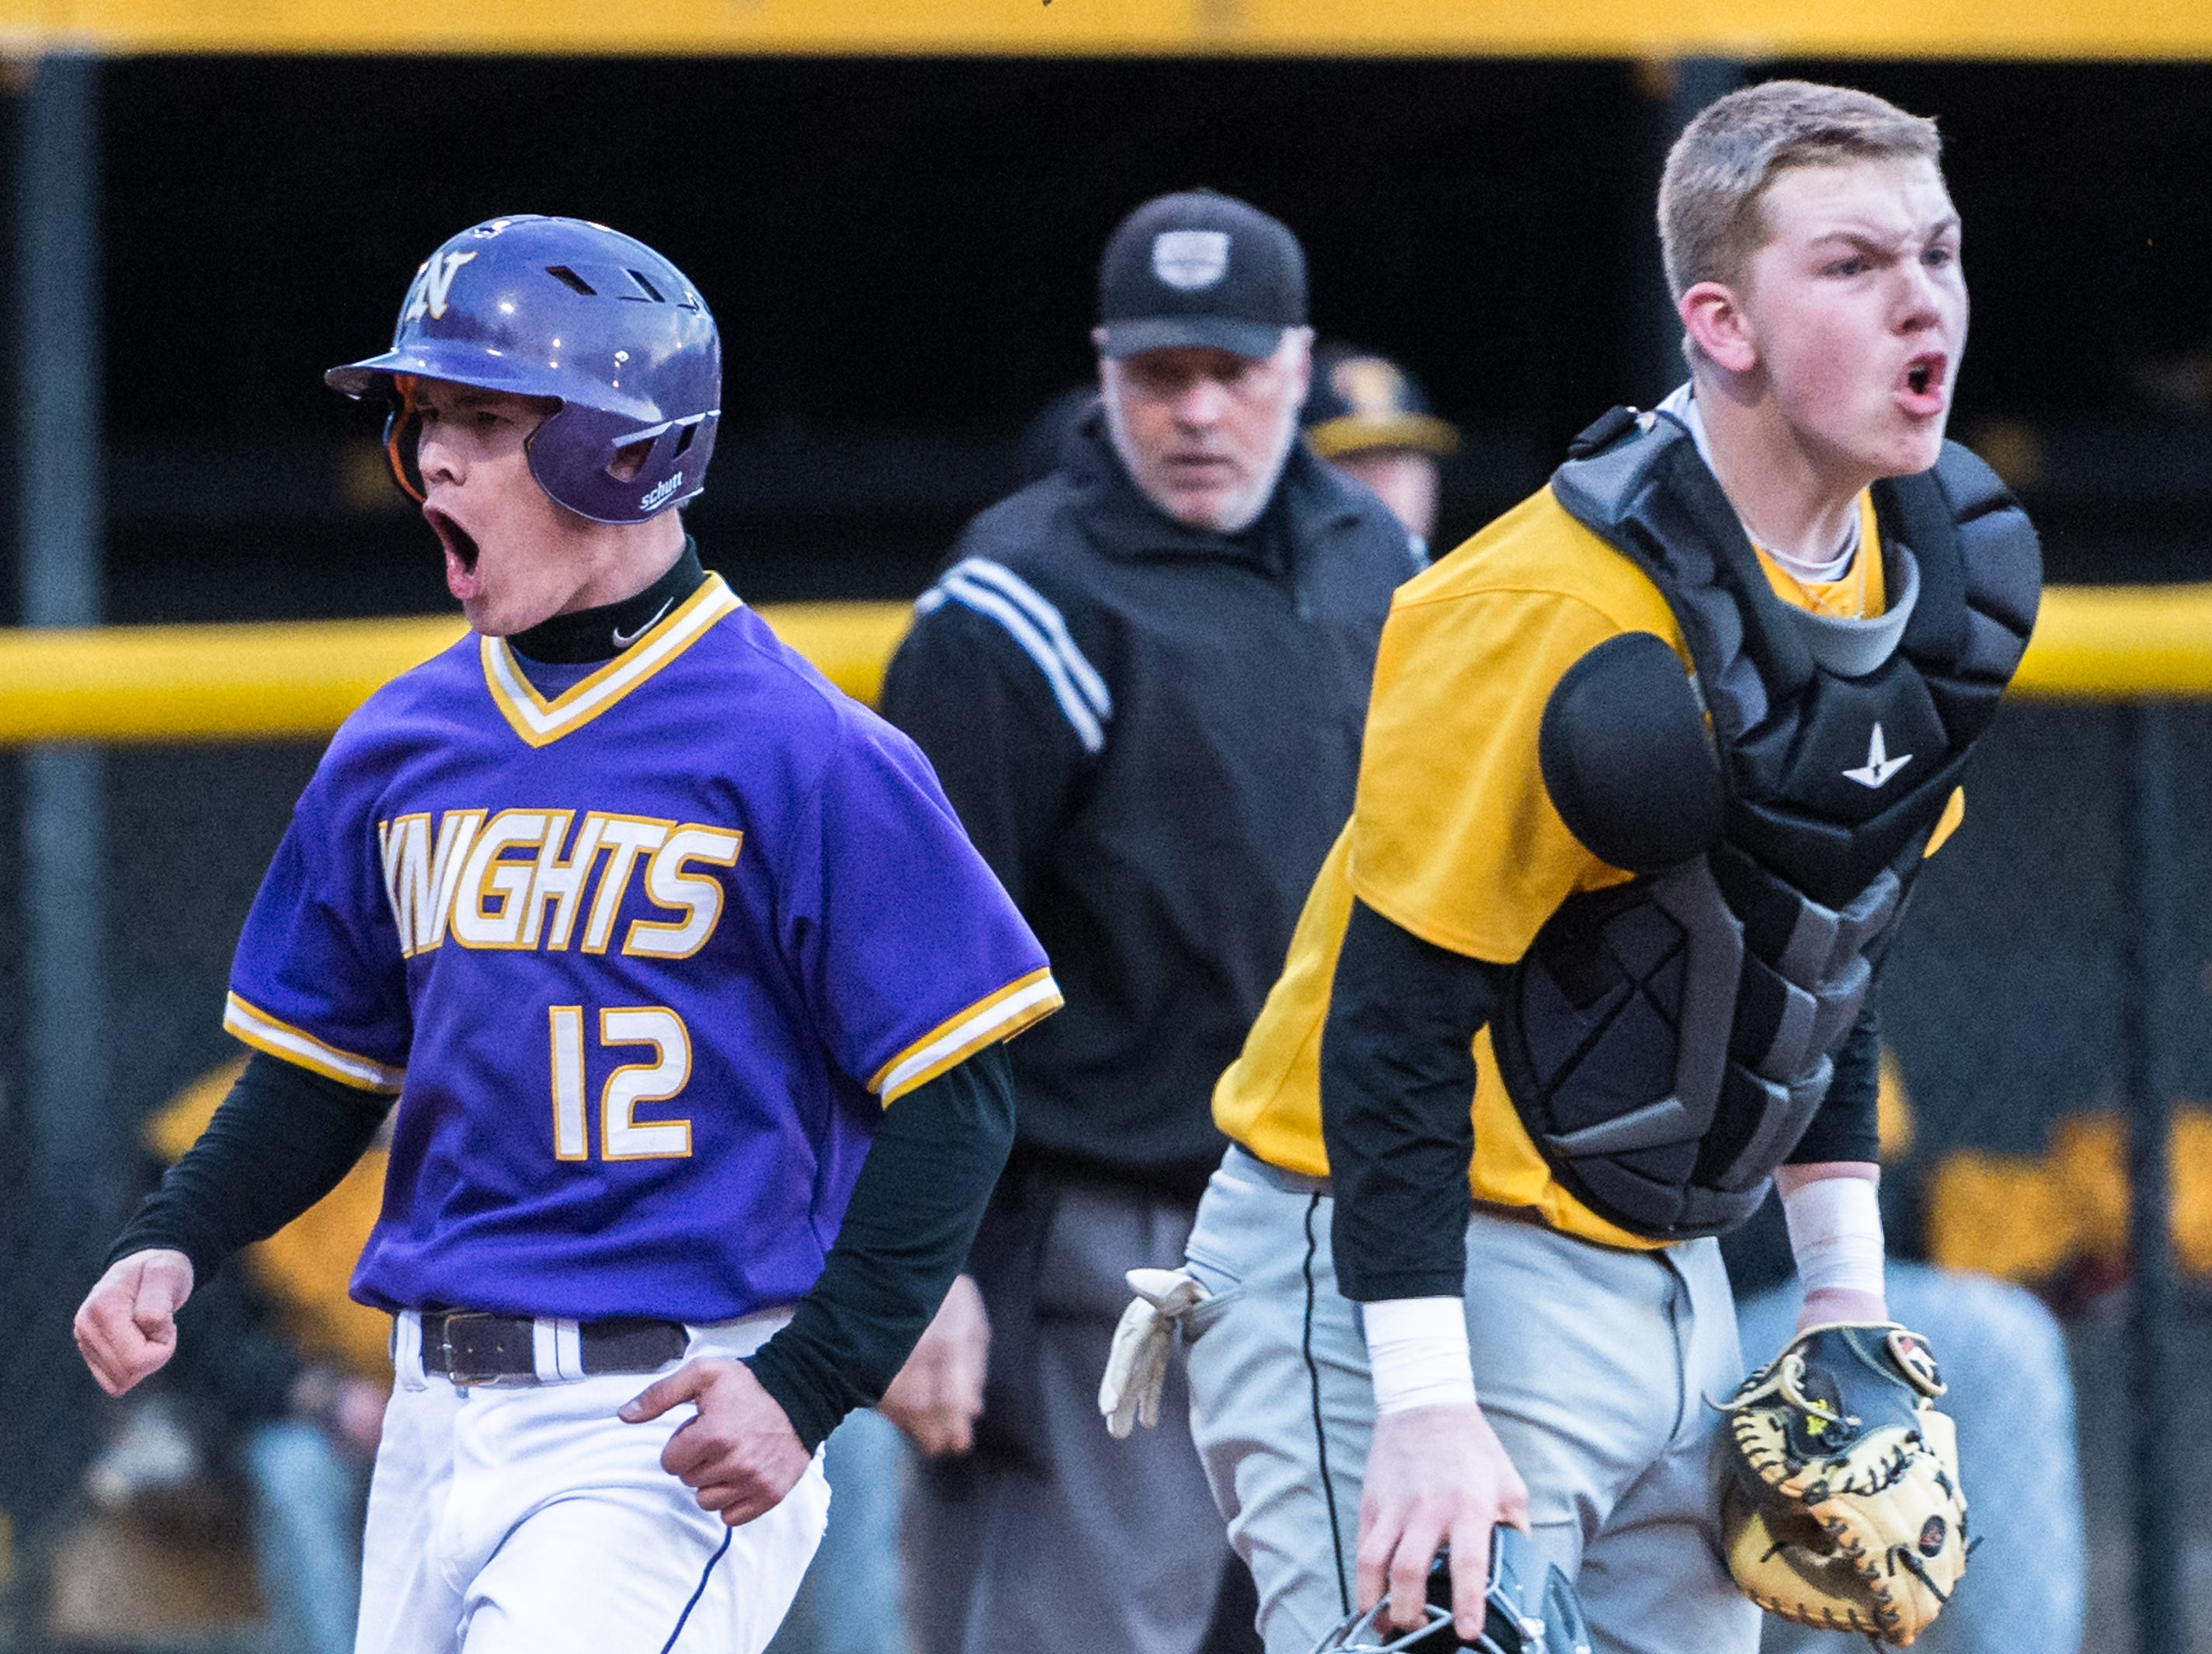 North Henderson's Kyle Decker cheers as he safely crosses home plate during their game against Tuscola Friday, March 9, 2018. North Henderson defeated Tuscola 5-2 in 11 innings.